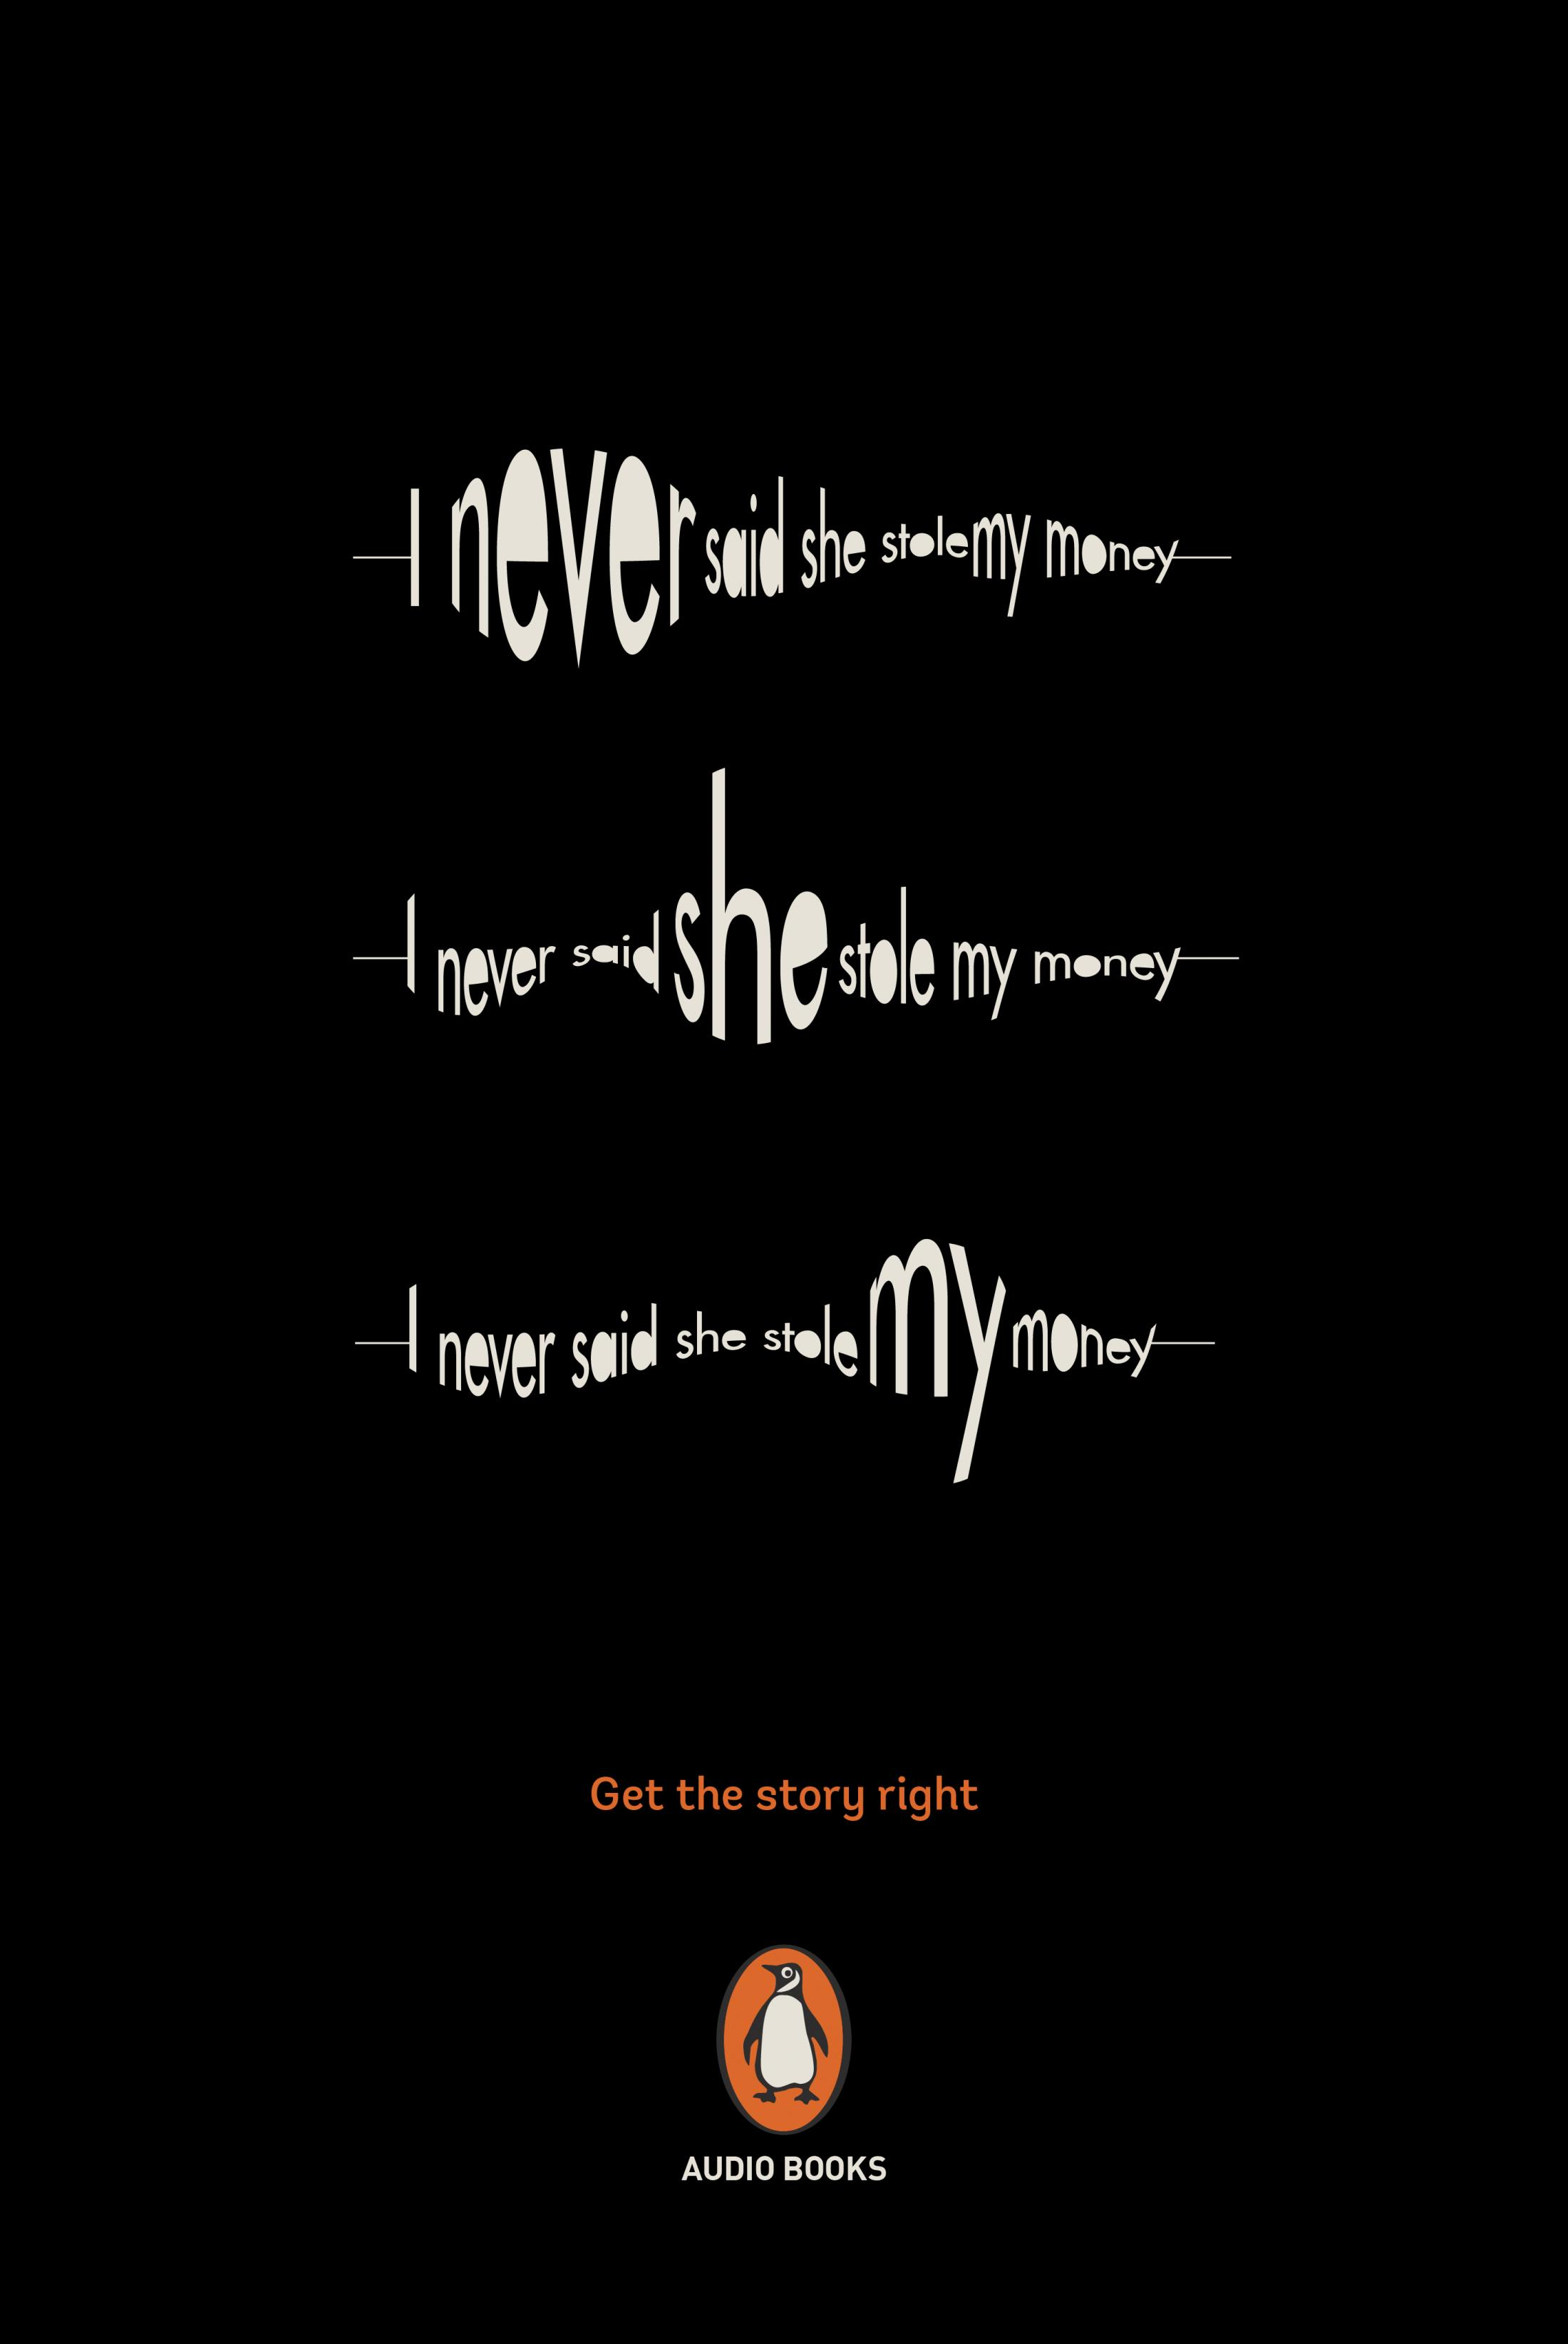 Penguin Print Ad - Get the Story Right, 1